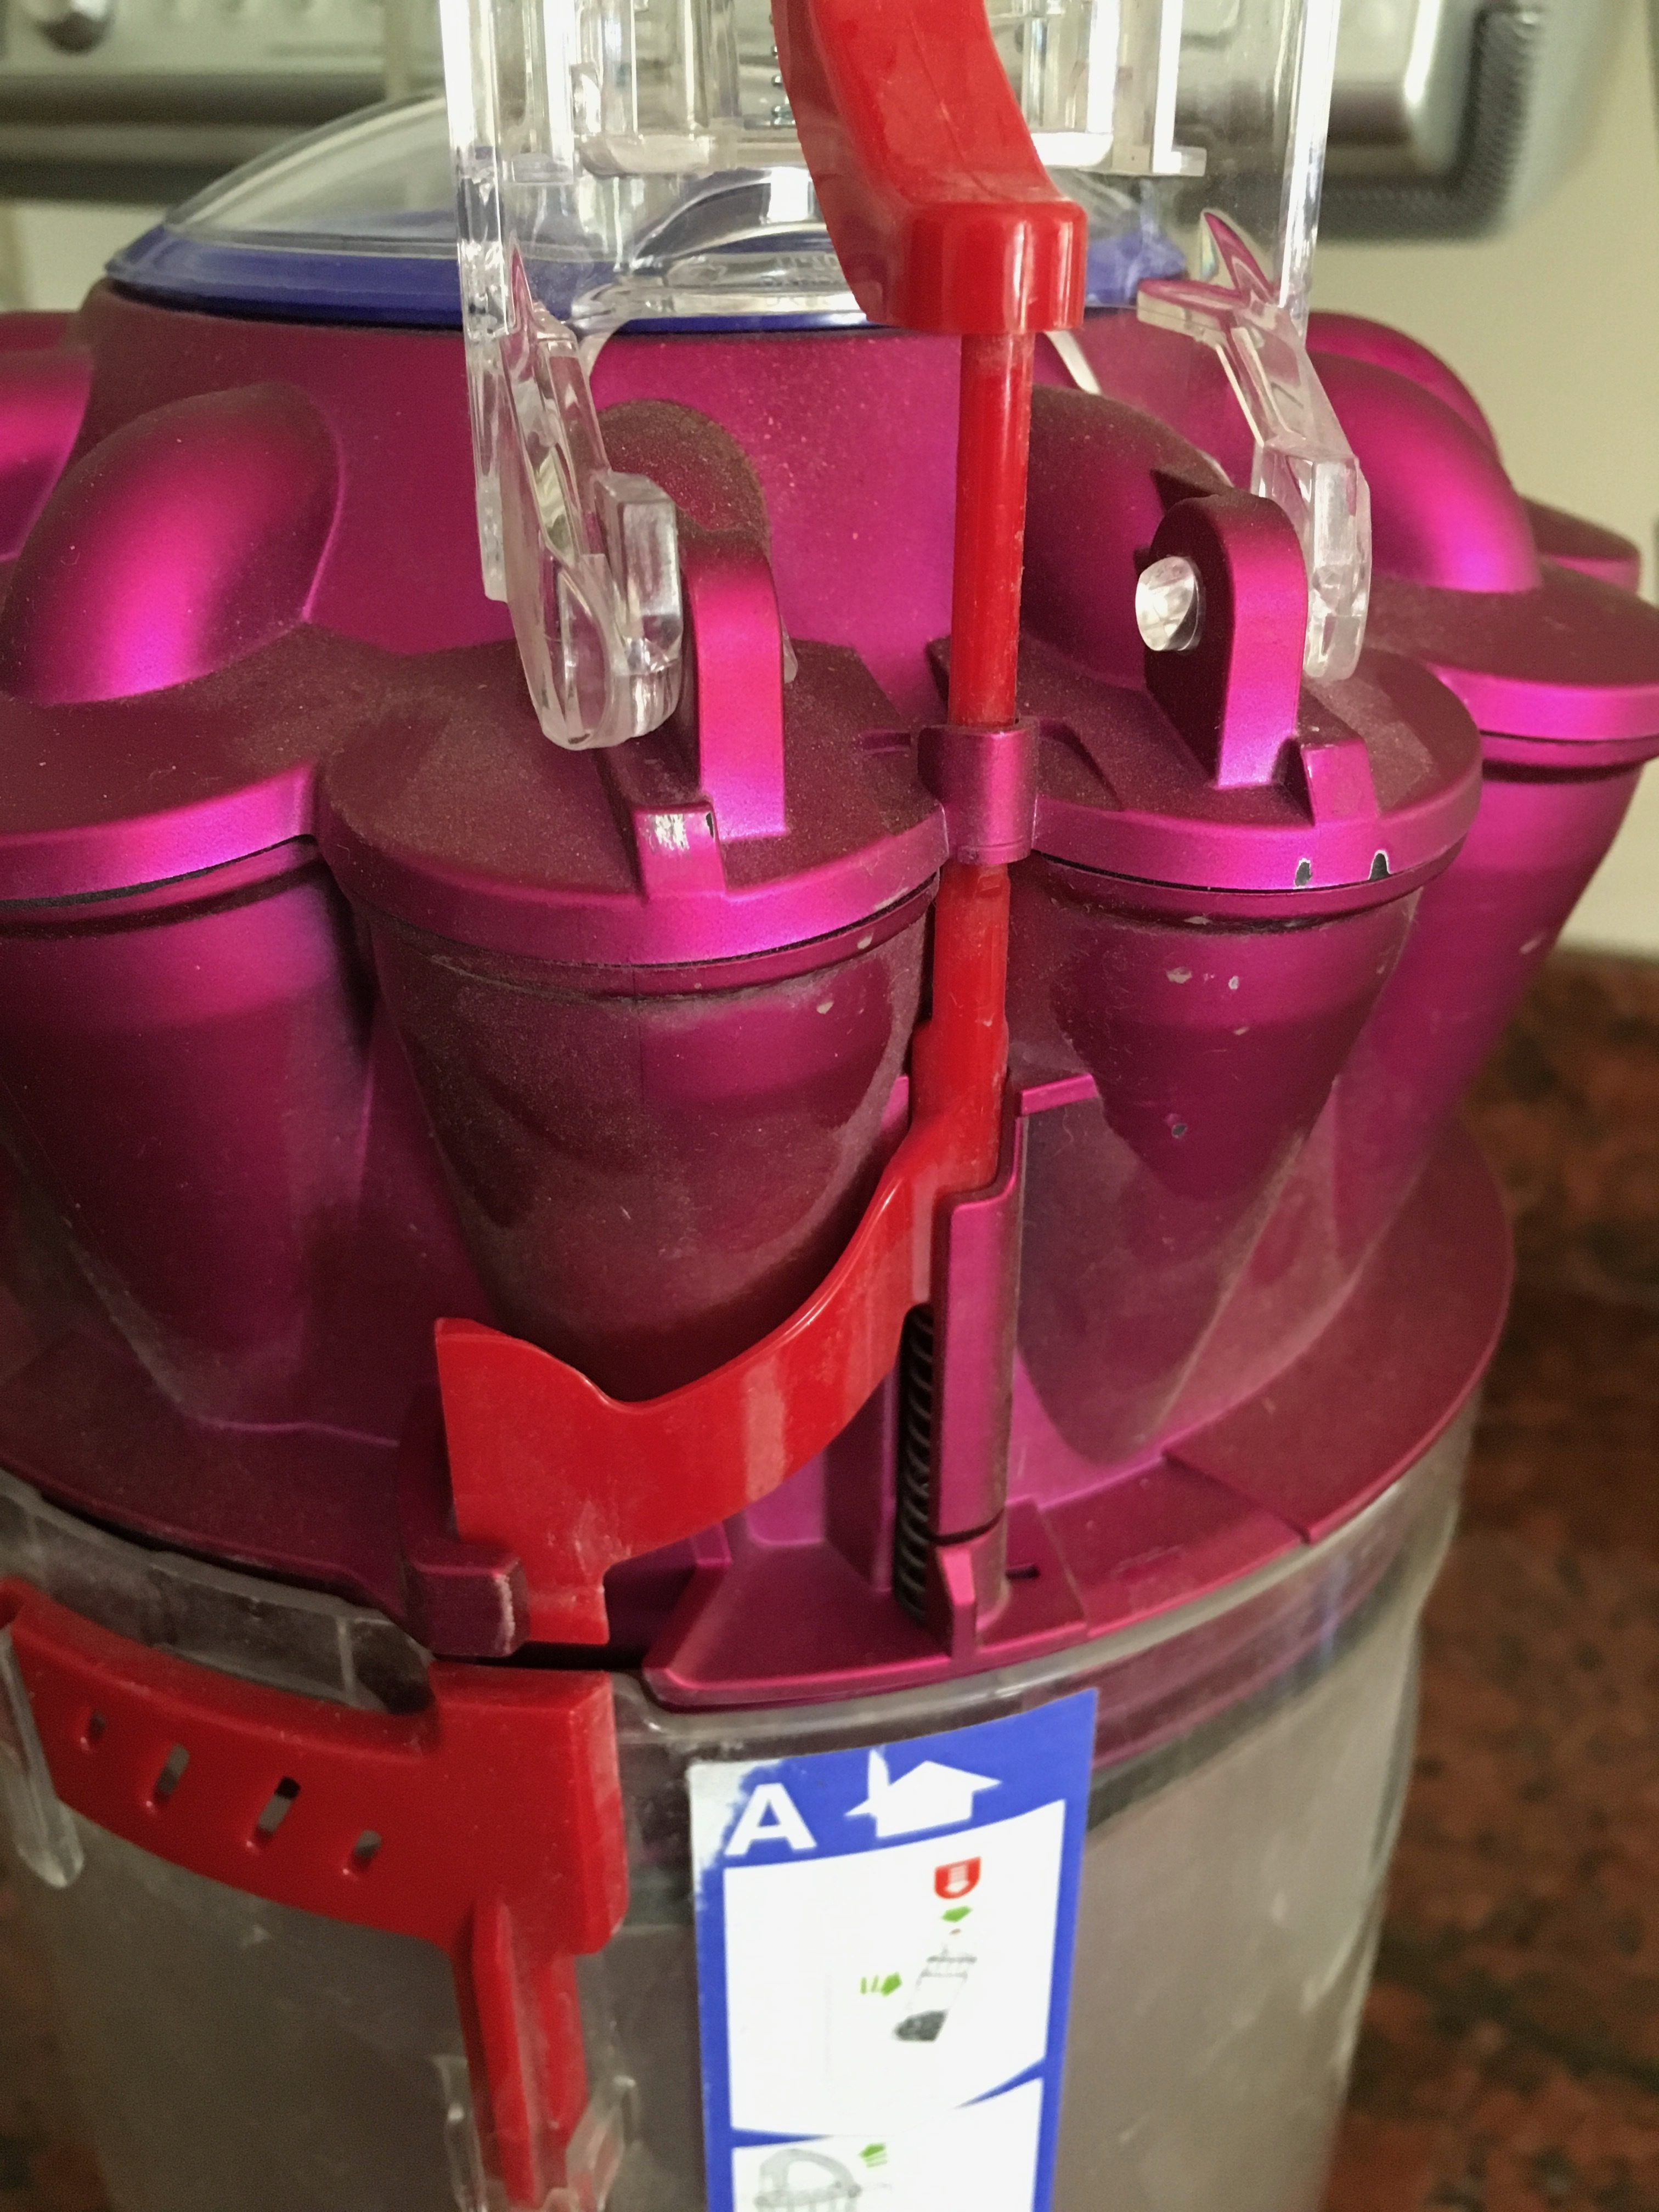 Dyson vacuum cleaners at bed bath and beyond - It Is Falling Apart The Plastic Breaks Easily And Repairs Are Costly This Is Probably The Worst Vacuum Cleaner My Family Has